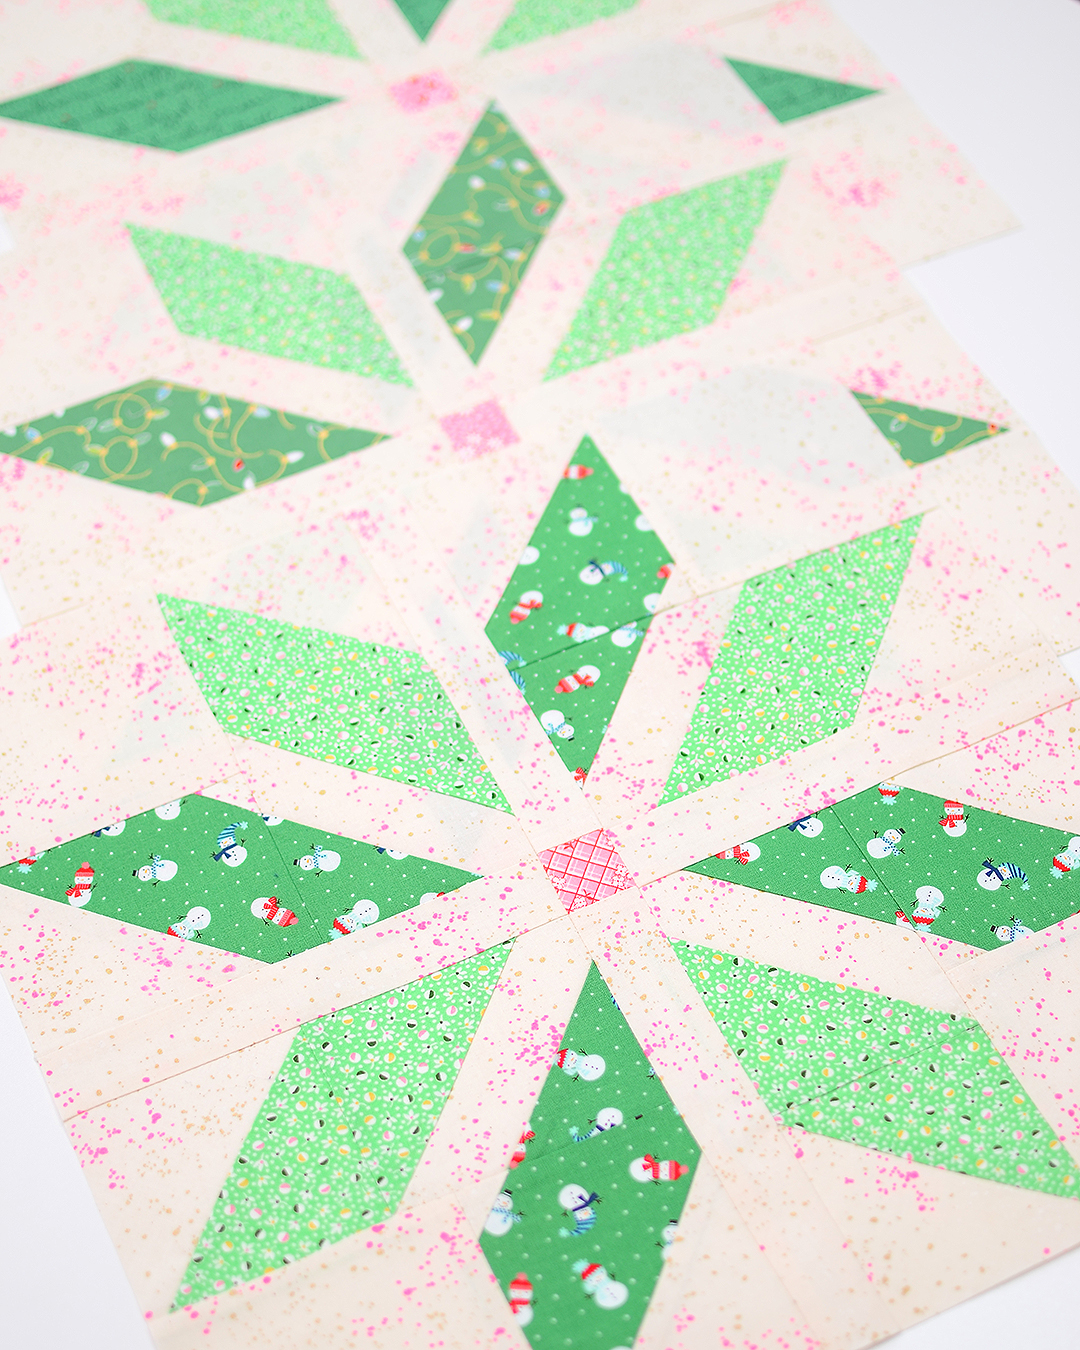 Dark green star quilt blocks